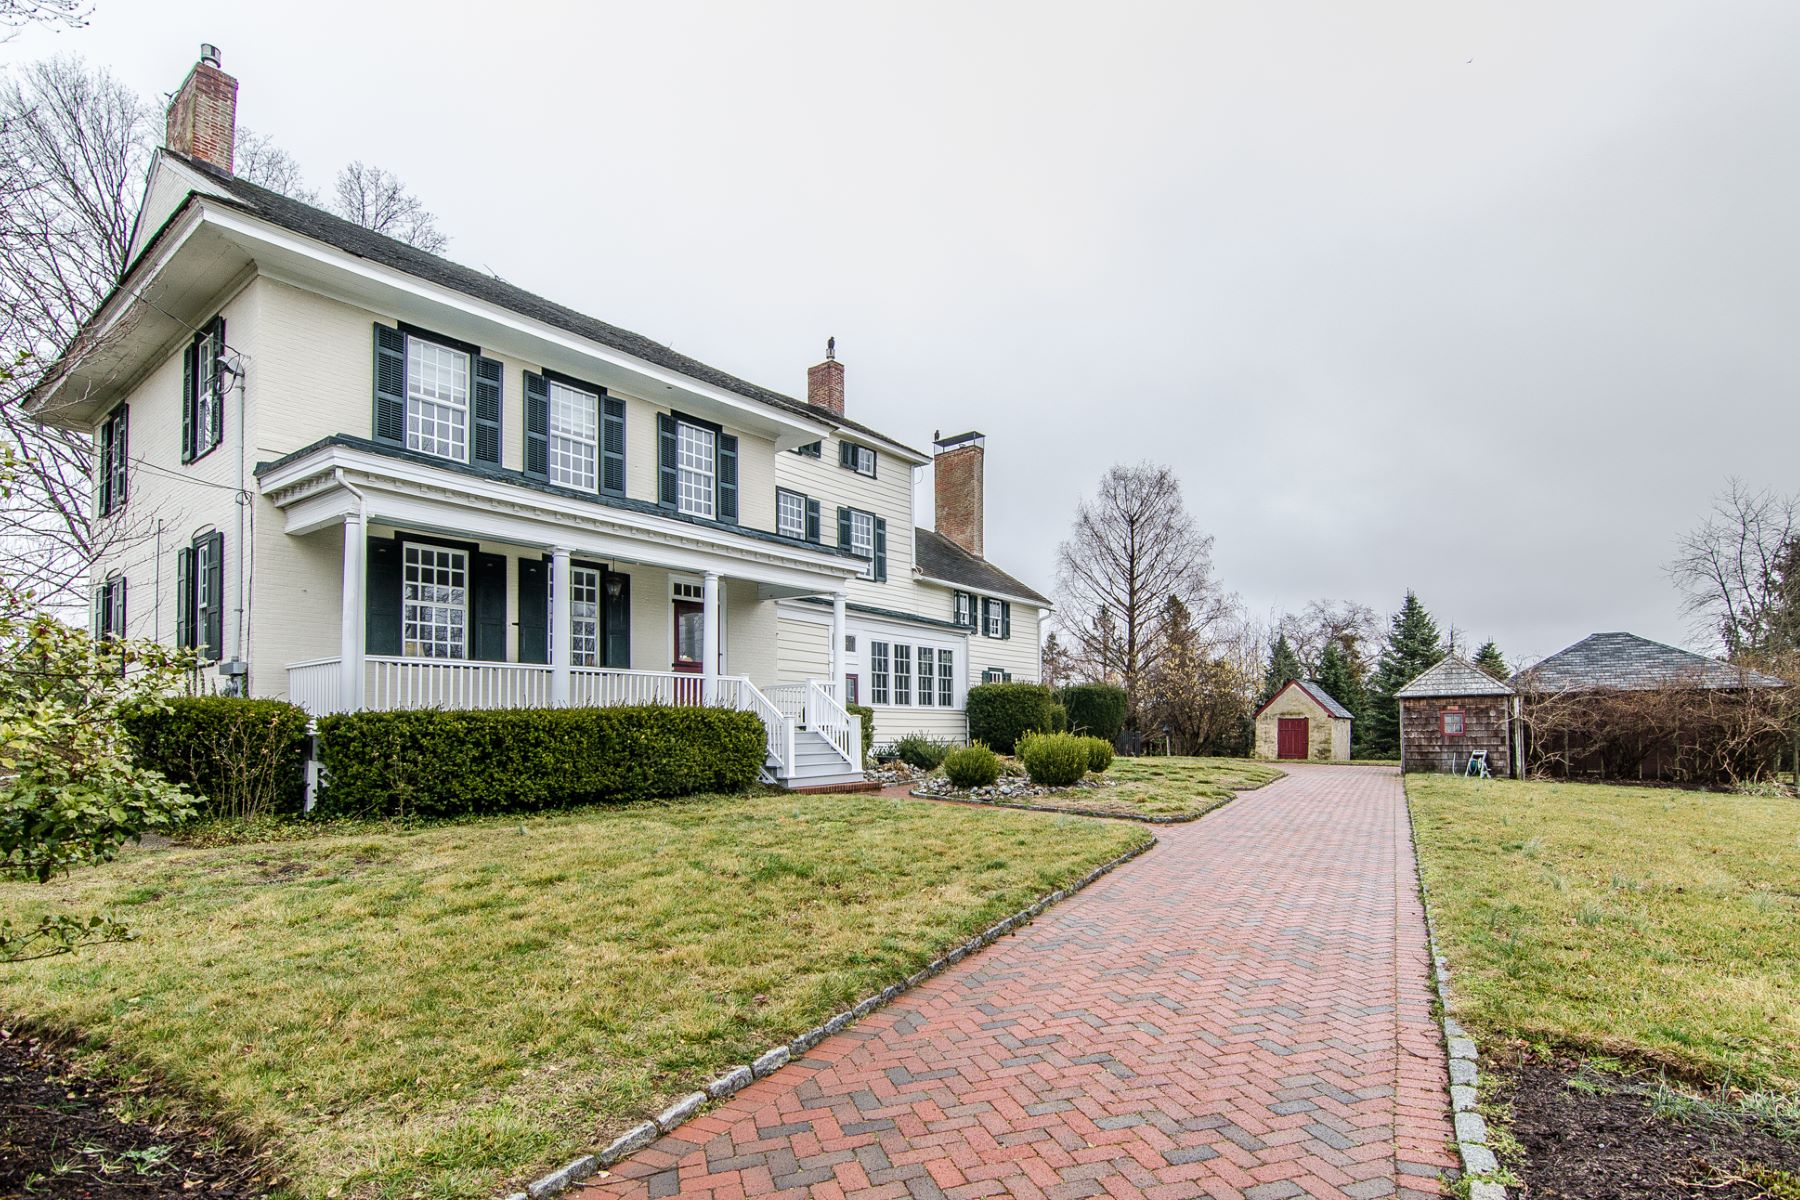 Single Family Home for Sale at Capturing the Spirit of Old and New in Cream Ridge - Upper Freehold Township 3 Wygant Road Cream Ridge, New Jersey, 08514 United States